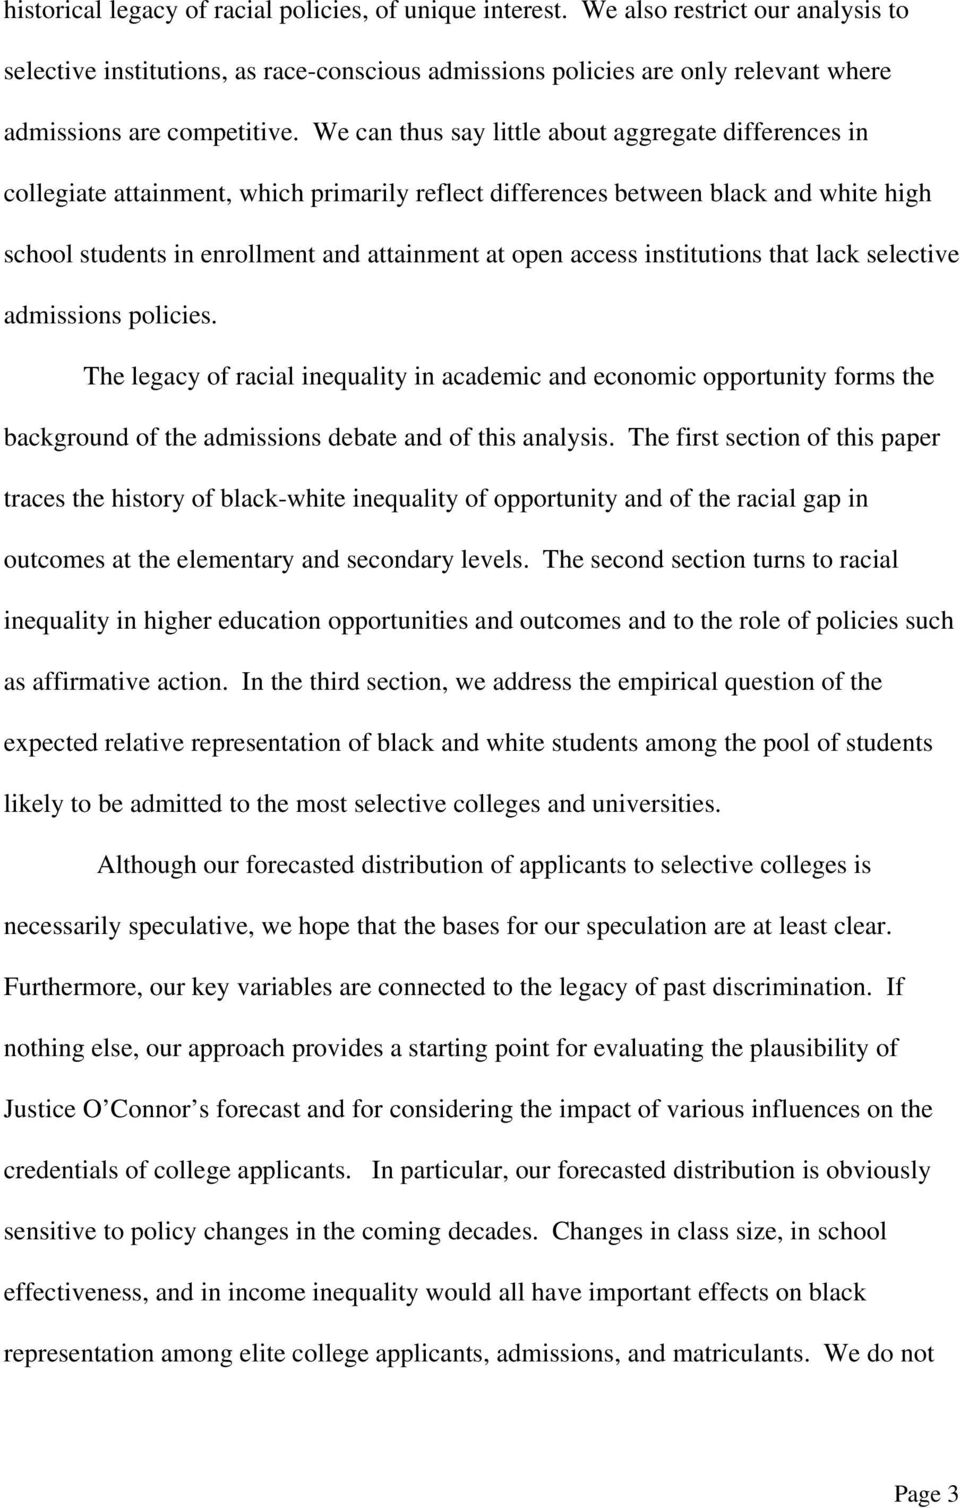 We can thus say little about aggregate differences in collegiate attainment, which primarily reflect differences between black and white high school students in enrollment and attainment at open